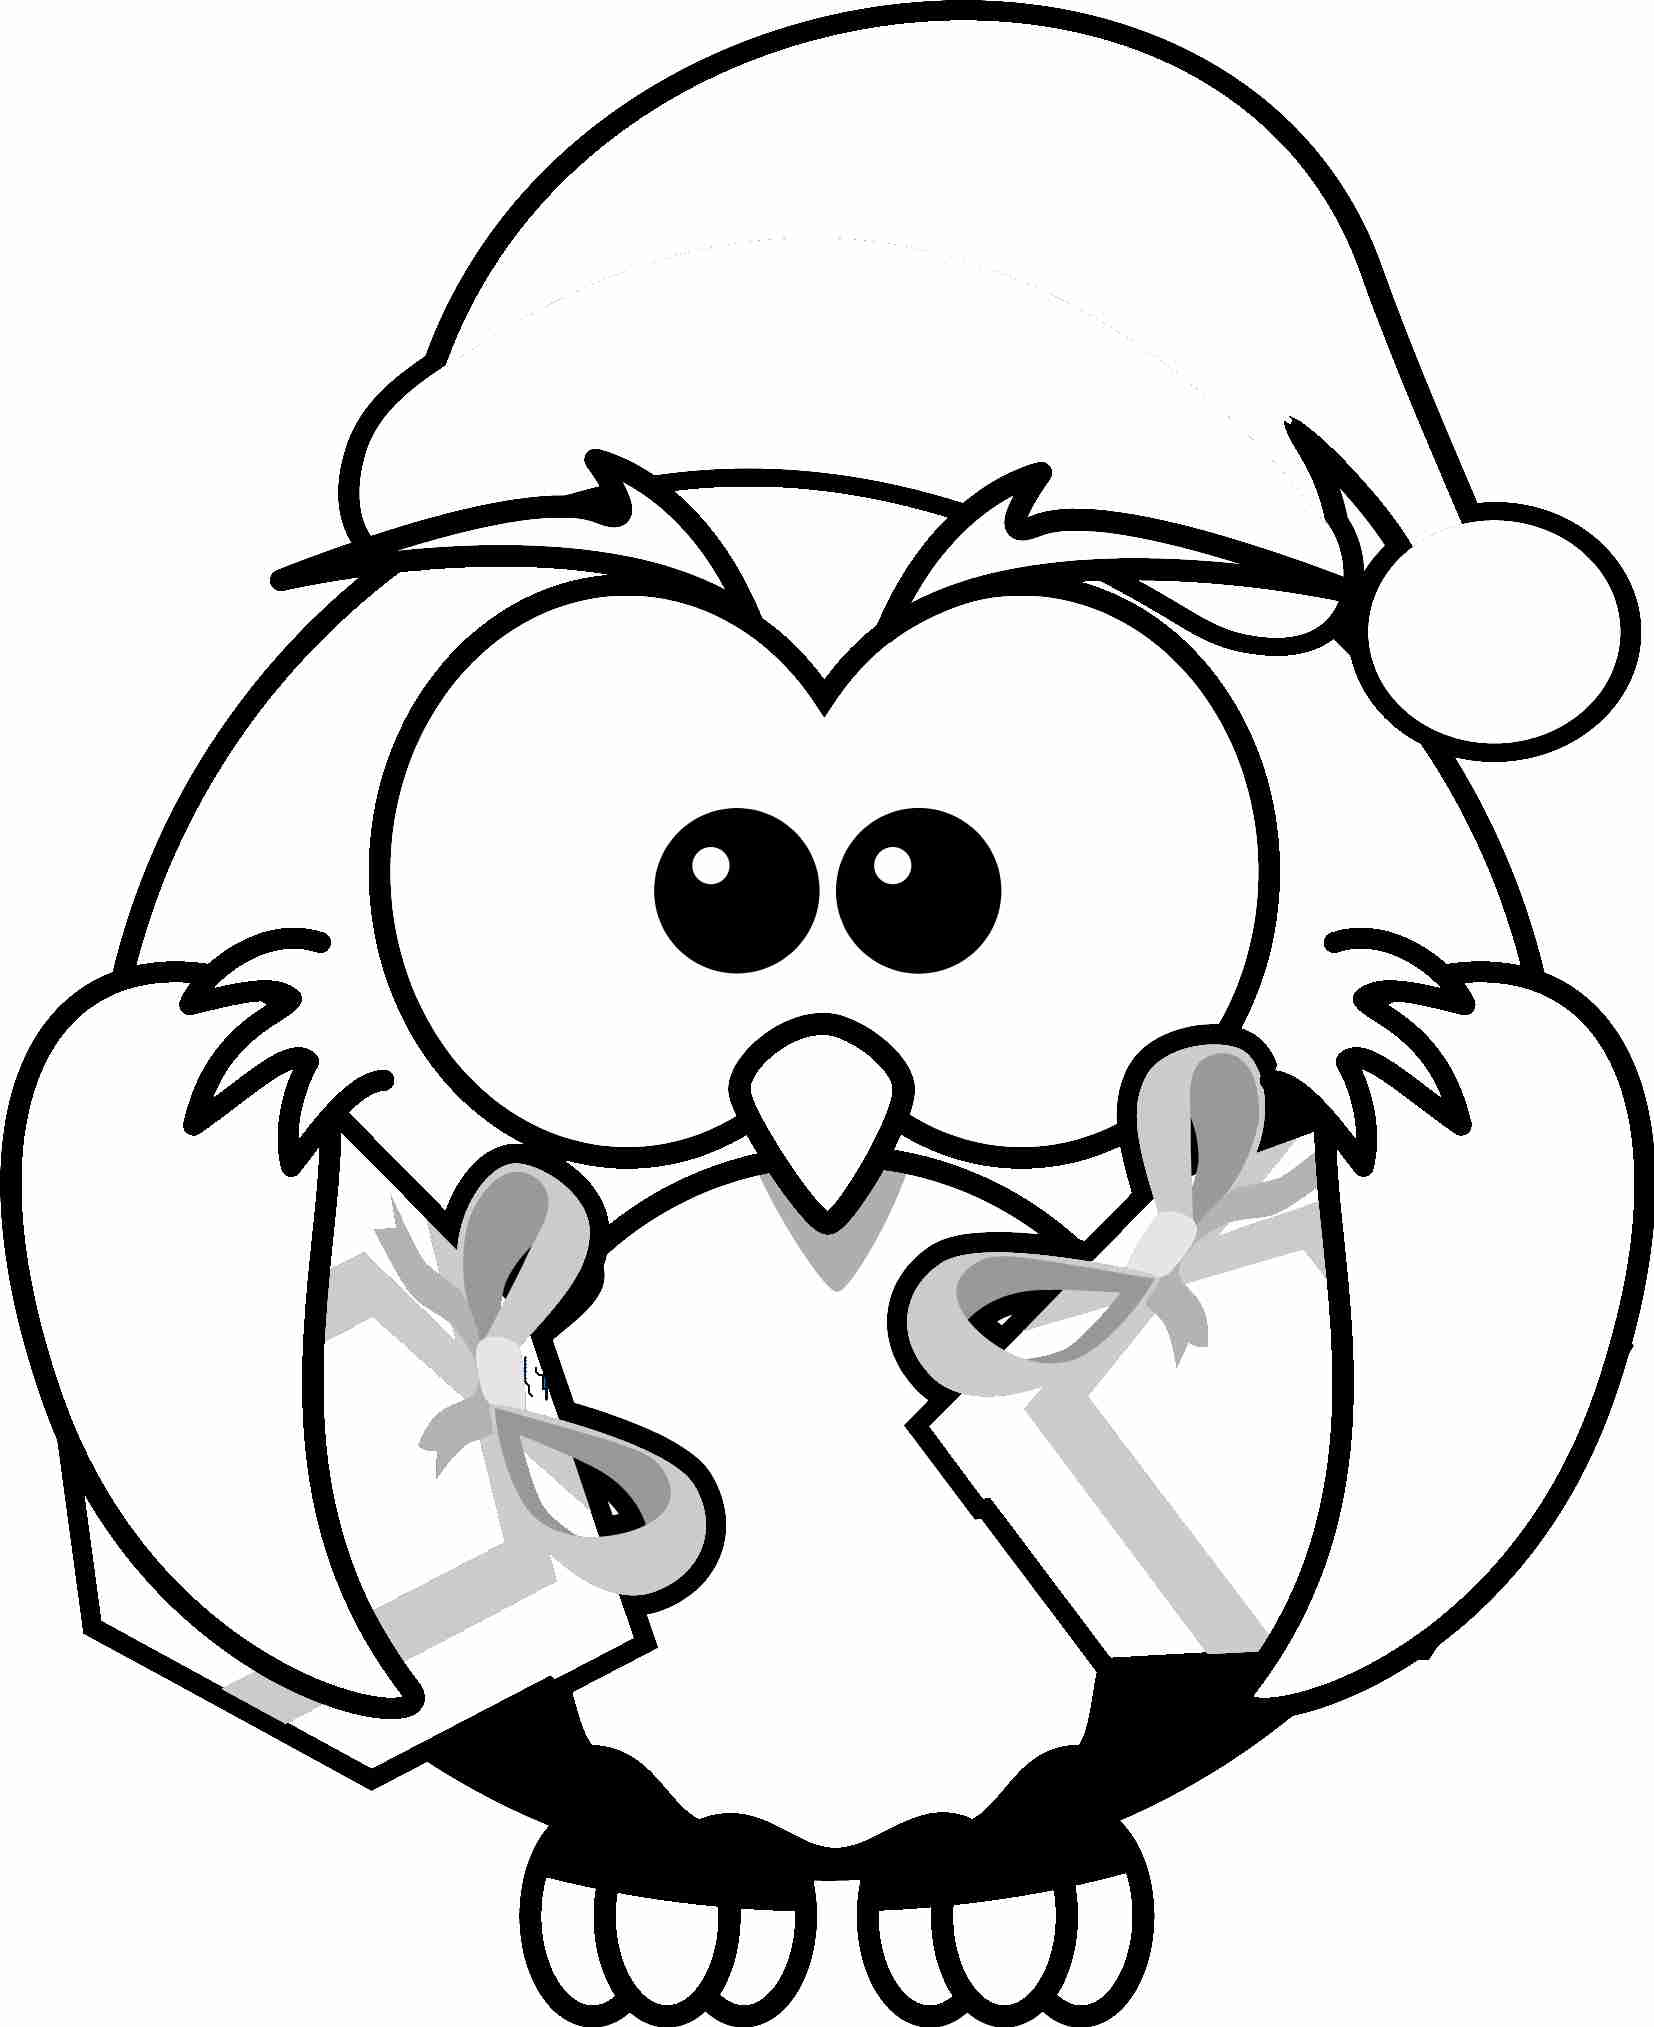 free christmas coloring pages for kids | Christmas Coloring Pages